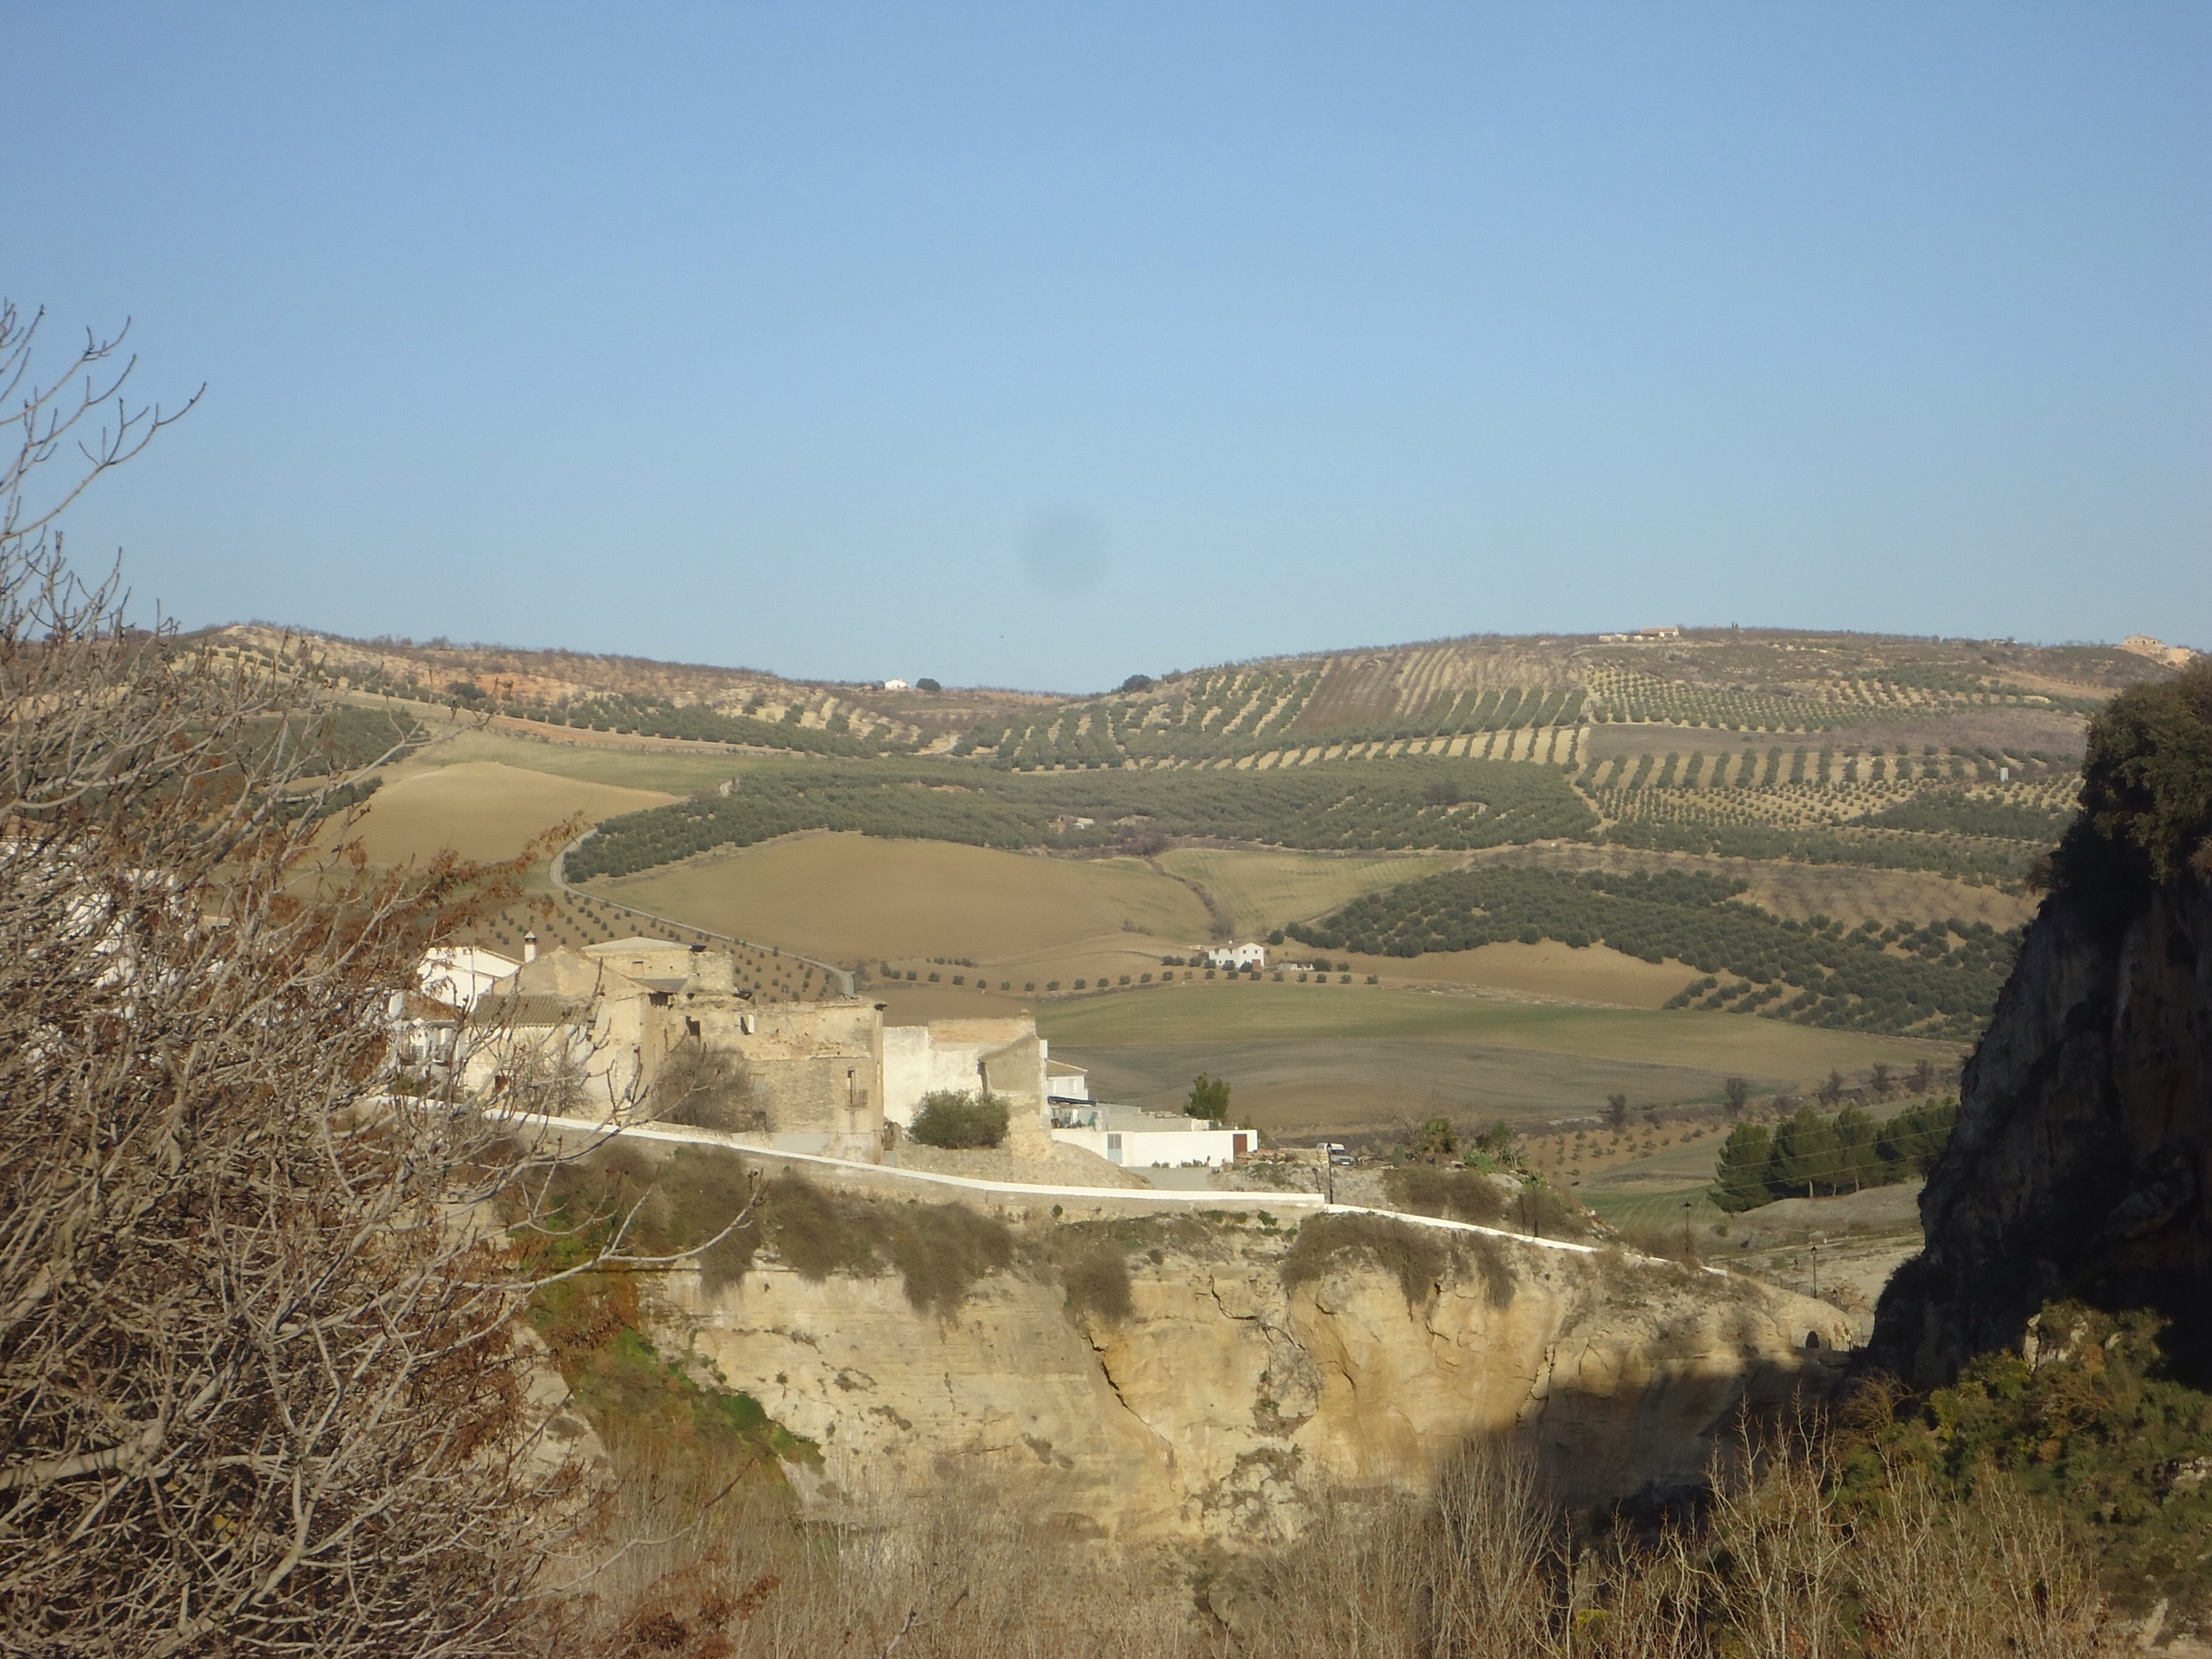 Nothing to do with the 'quake'...just a nice picture of an olive studded hillside!